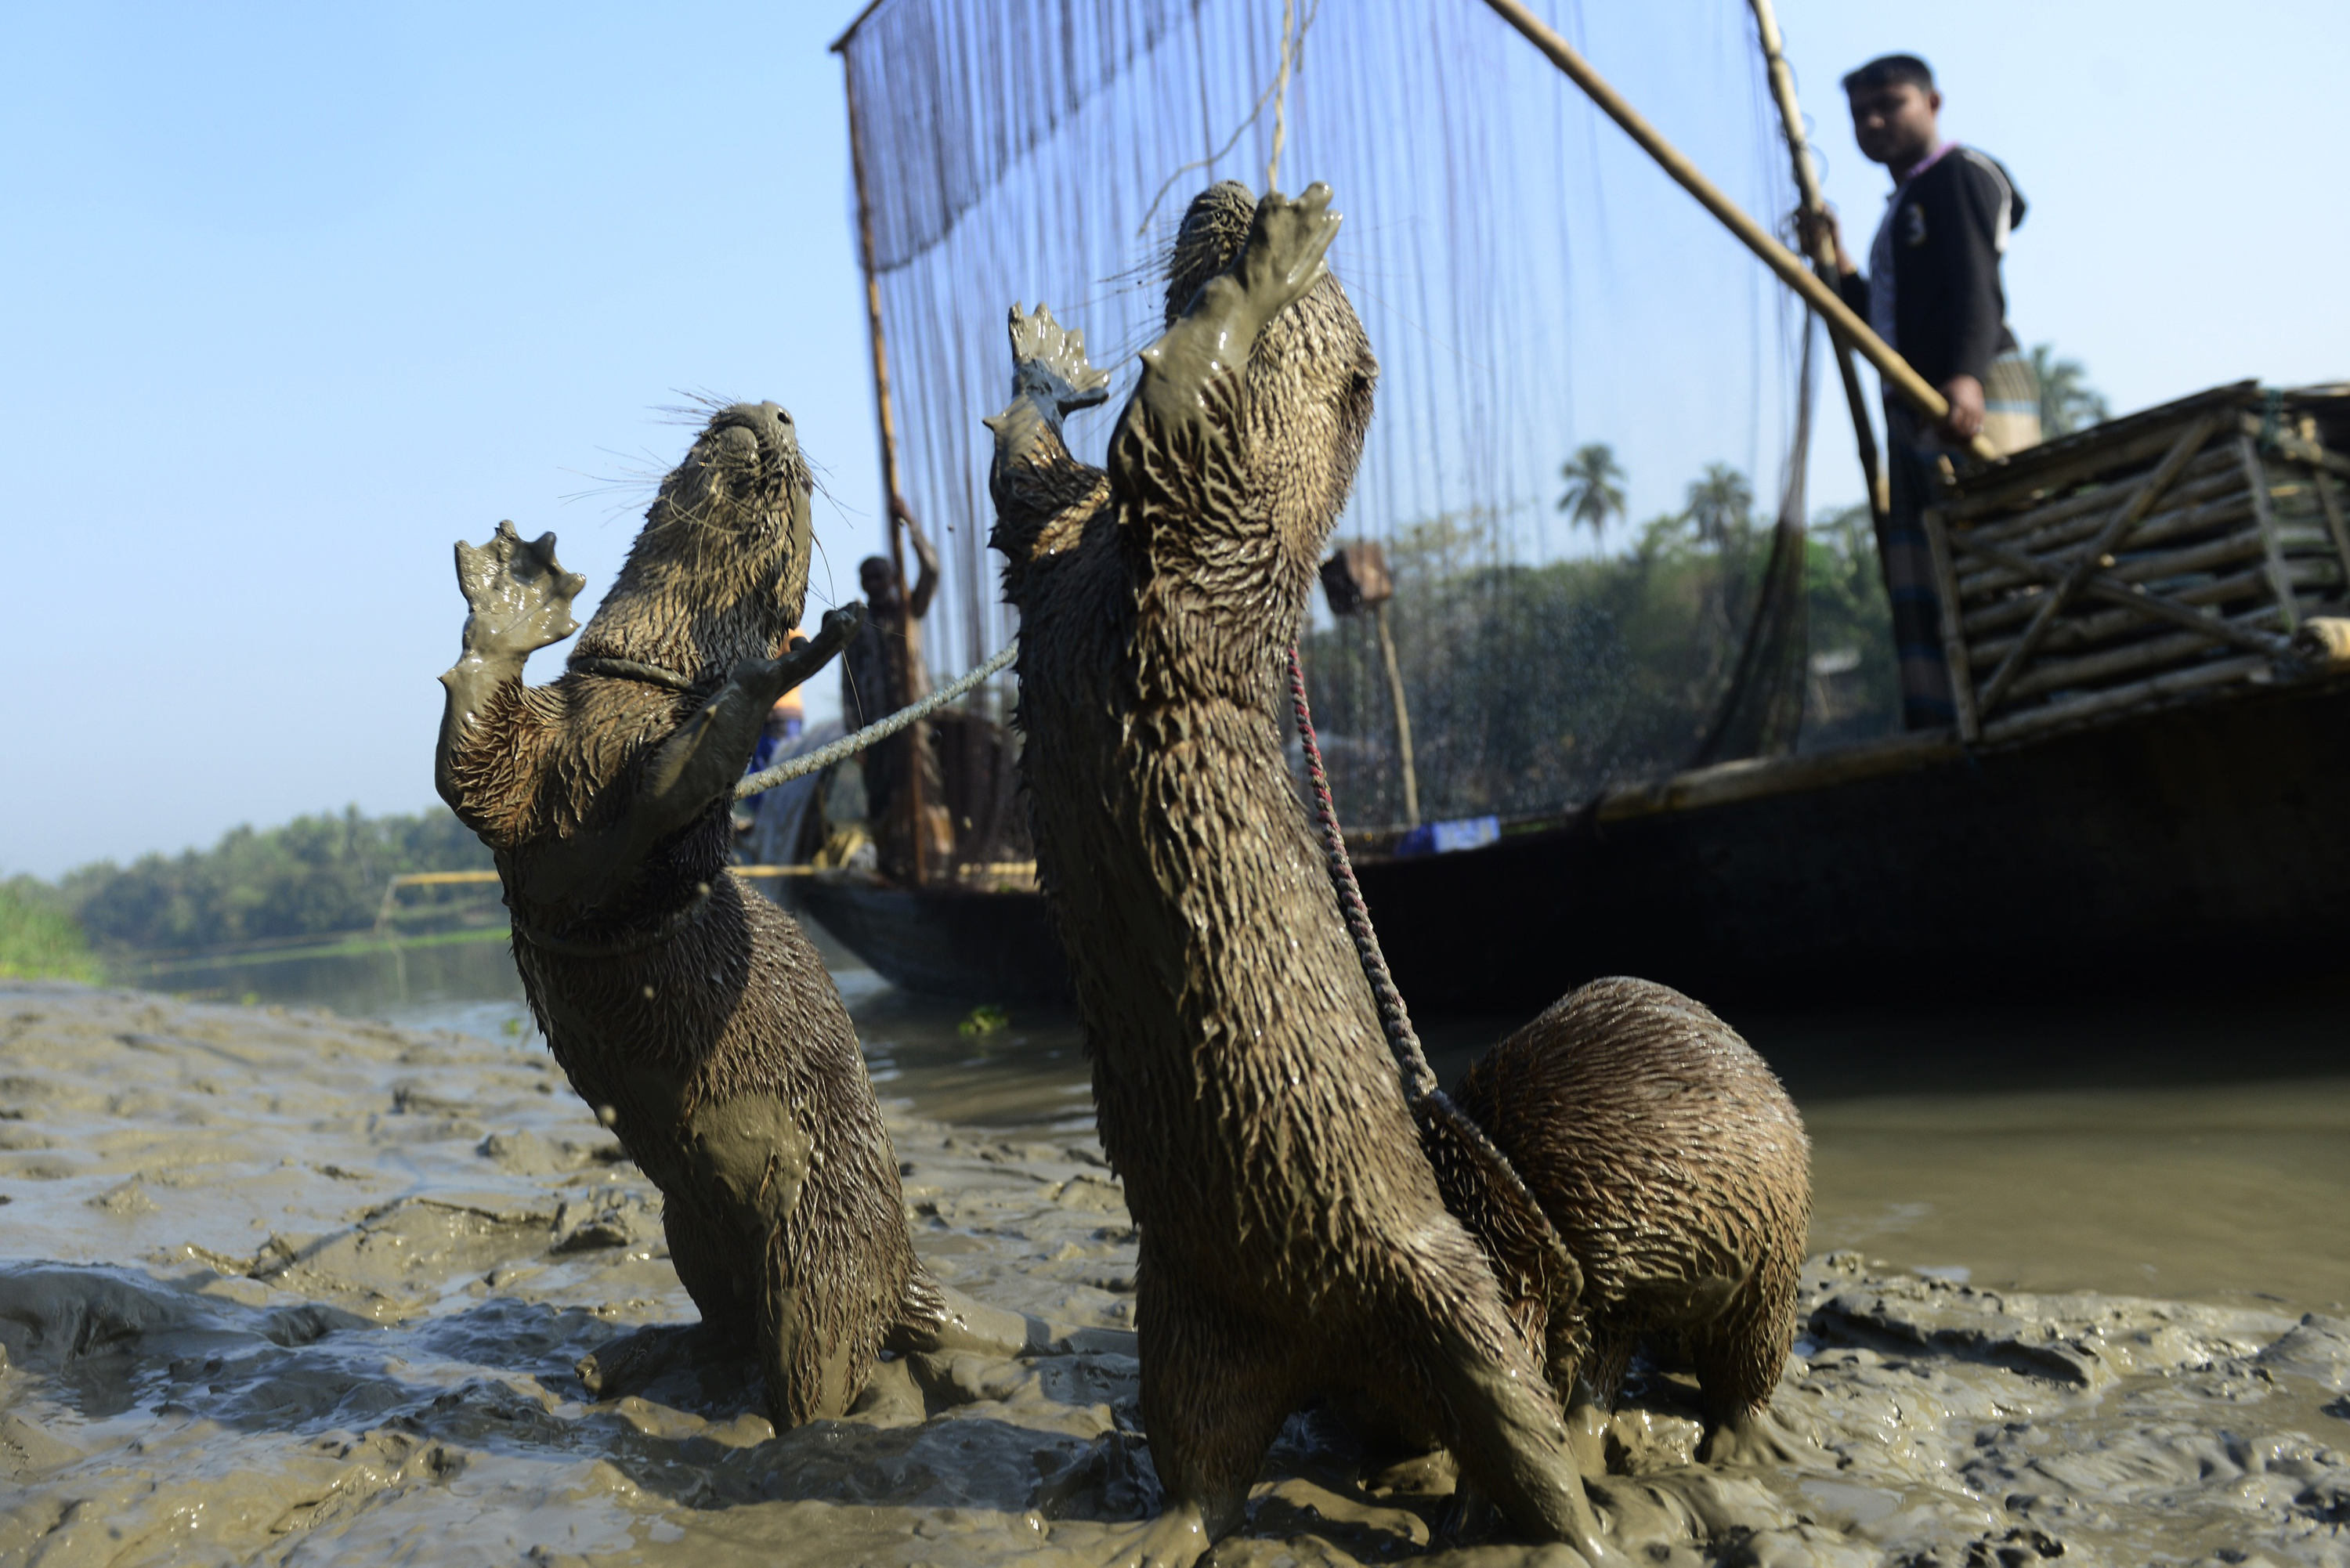 Bangladeshi fisherman feed their otters as they catch fish in Narail some 208kms from Dhaka on March 11, 2014.  The fishermen are using a rare technique that relies on coordination between man and trained otters, a centuries-old fishing partnership that has already long died out in other parts of Asia.